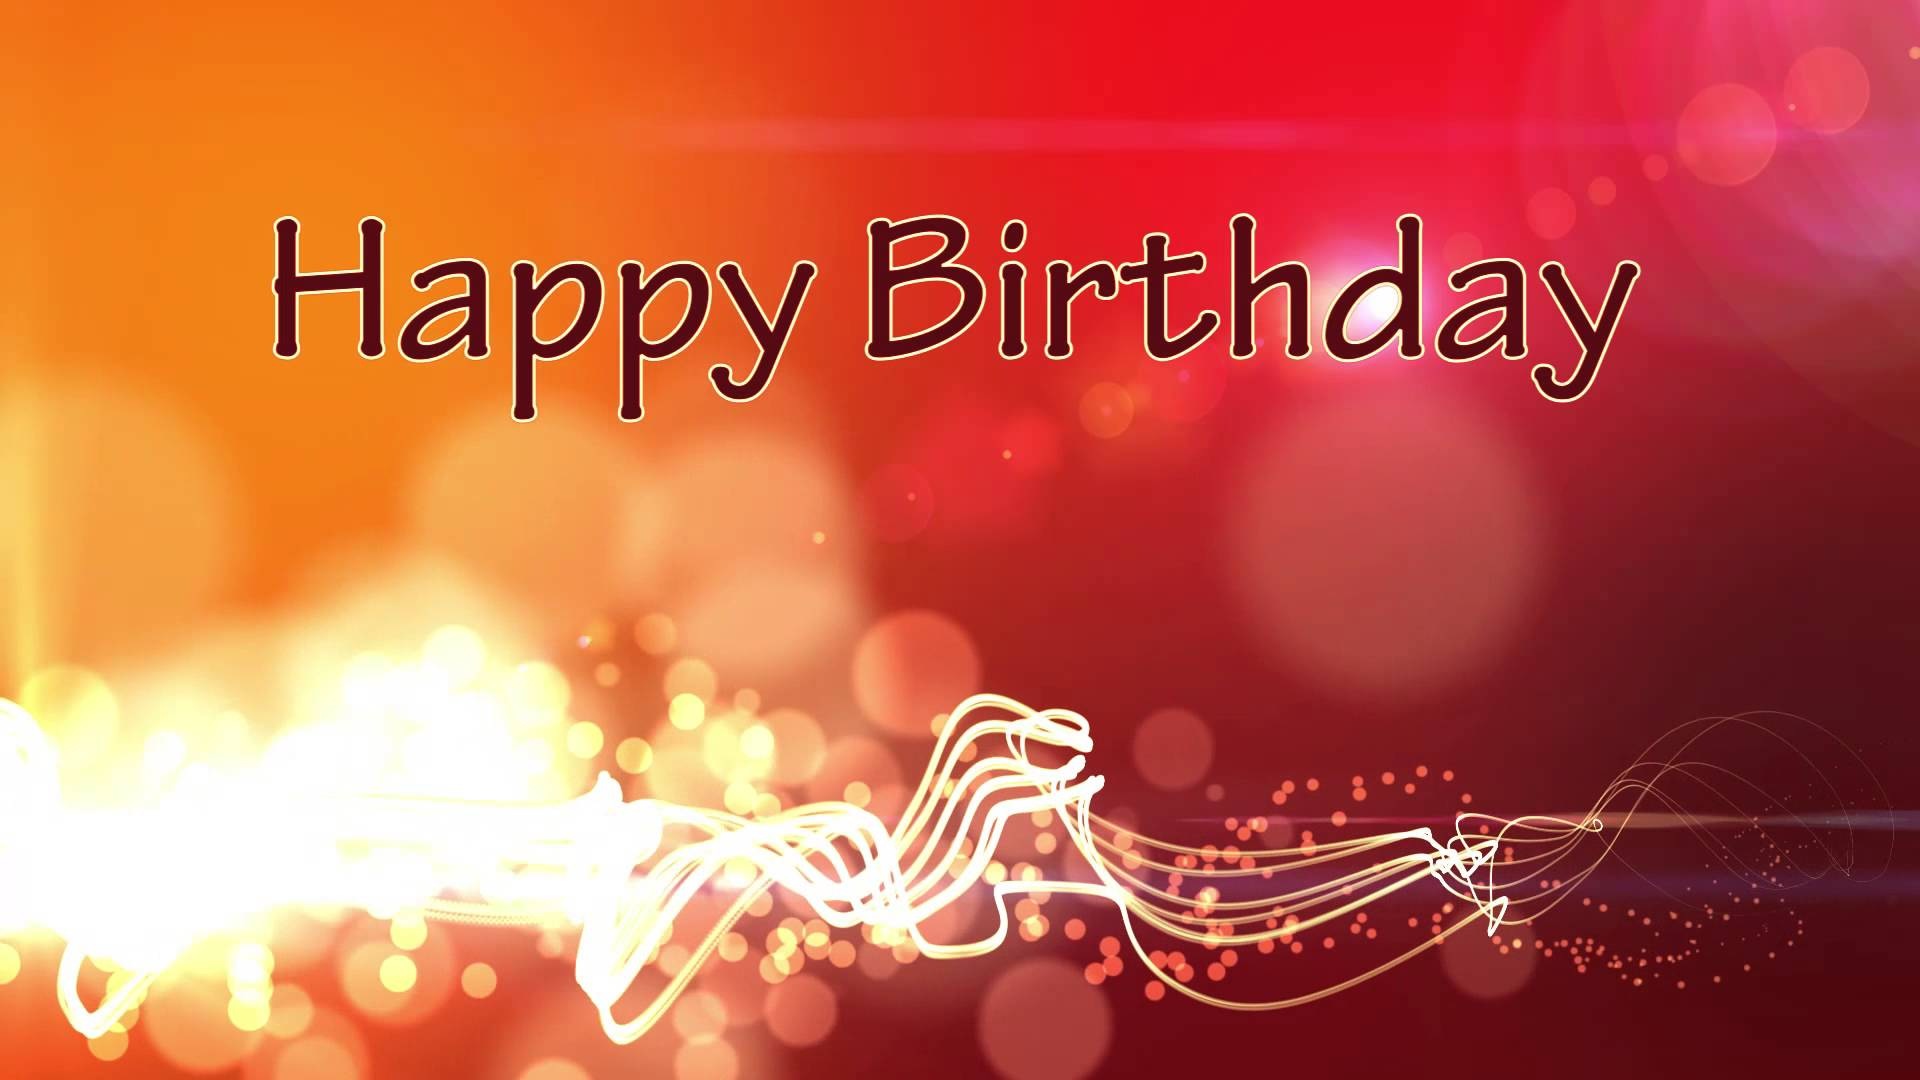 birthday background images hd ; Happy-birthday-wallpaper-HD-free-download